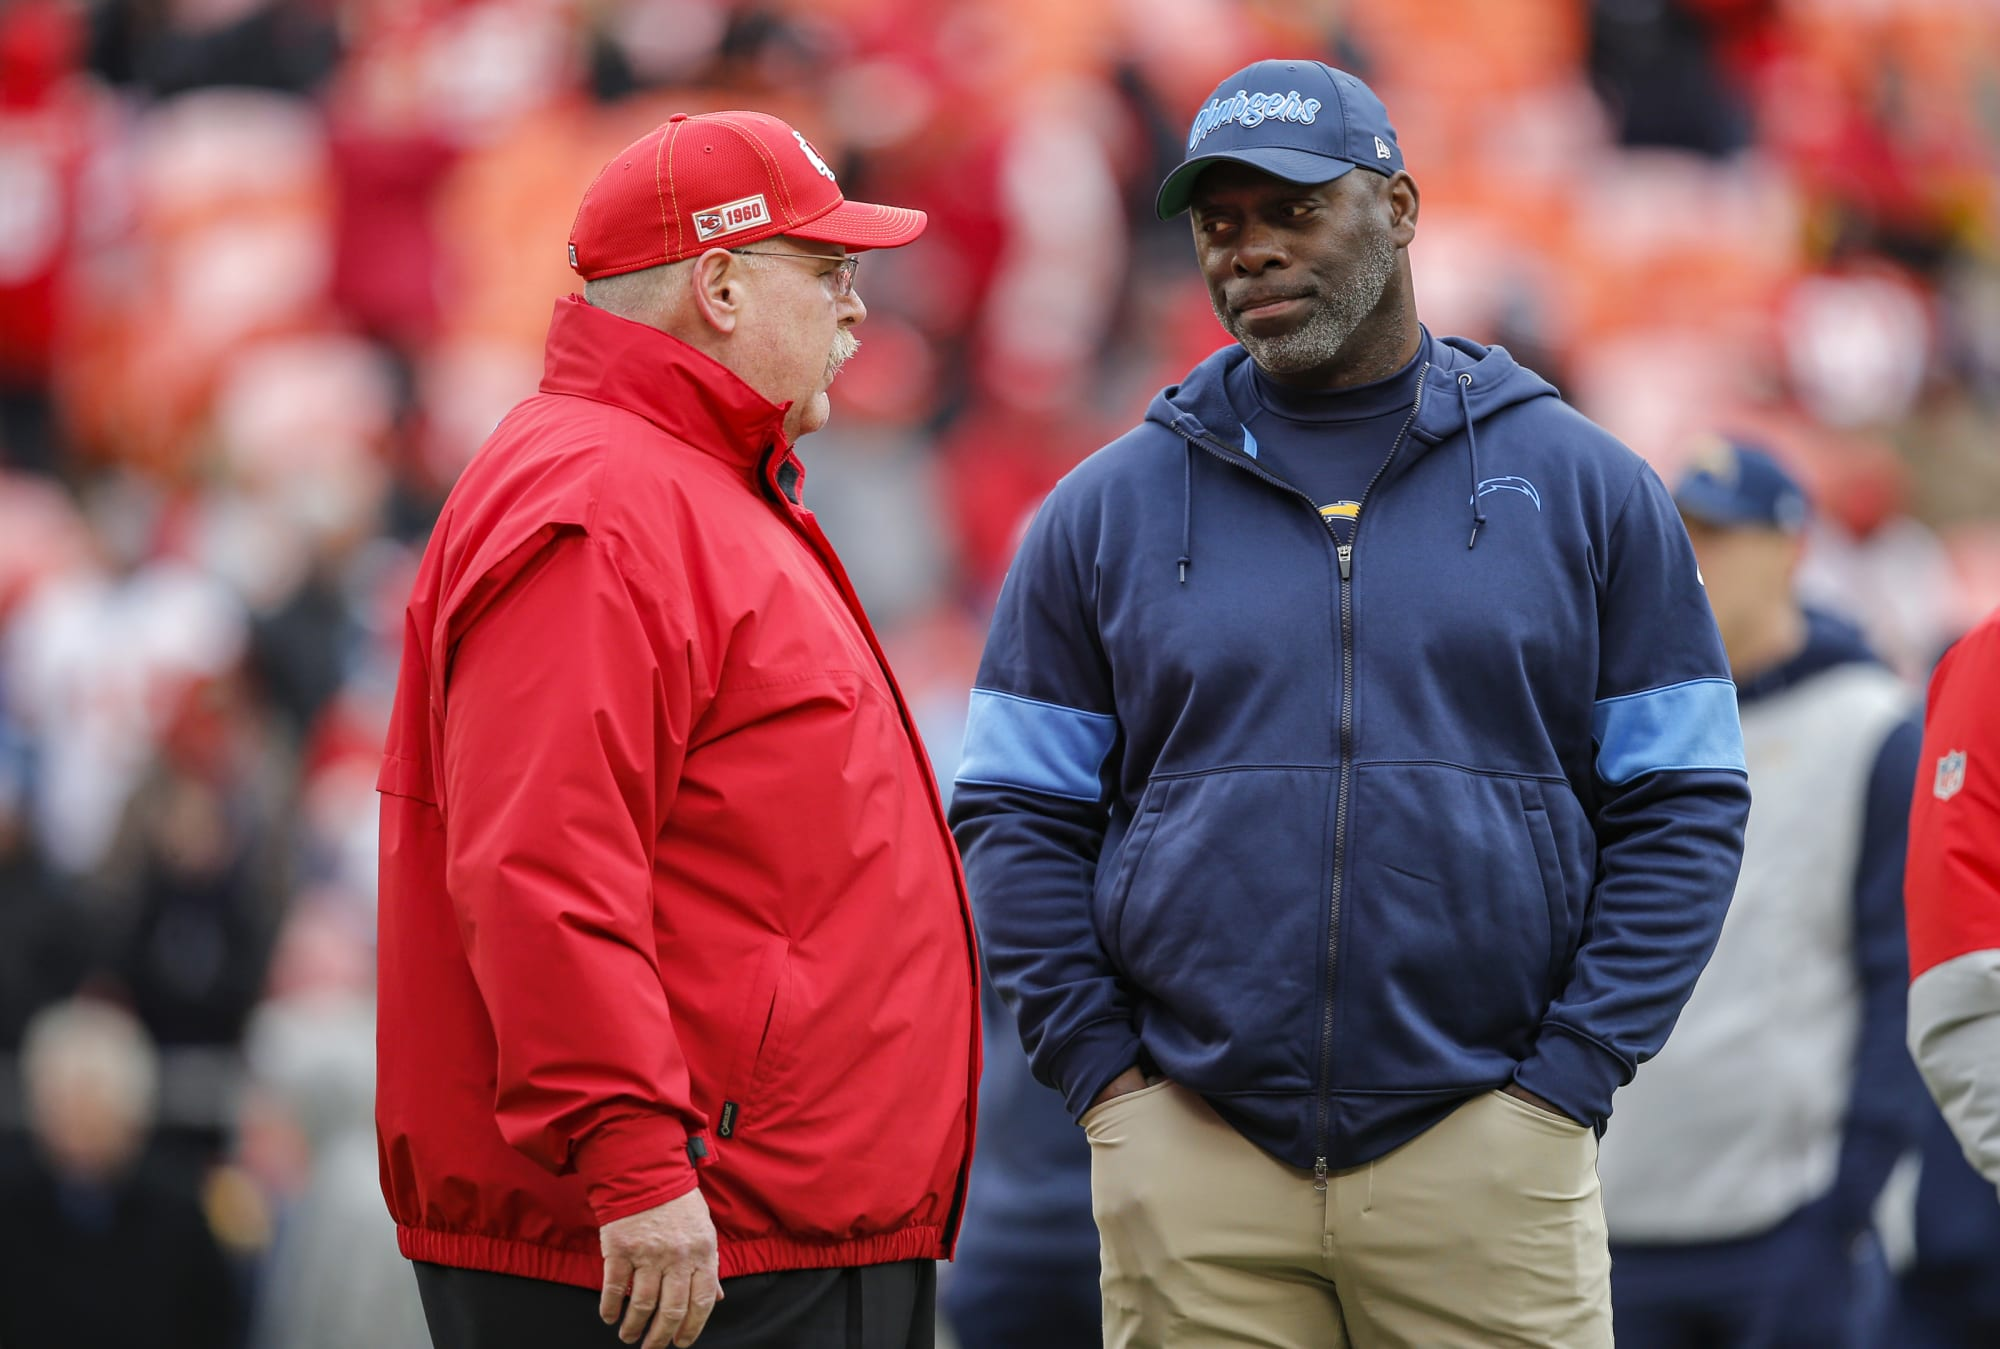 Chiefs vs. Chargers: Betting odds, lines, and advice for Week 2